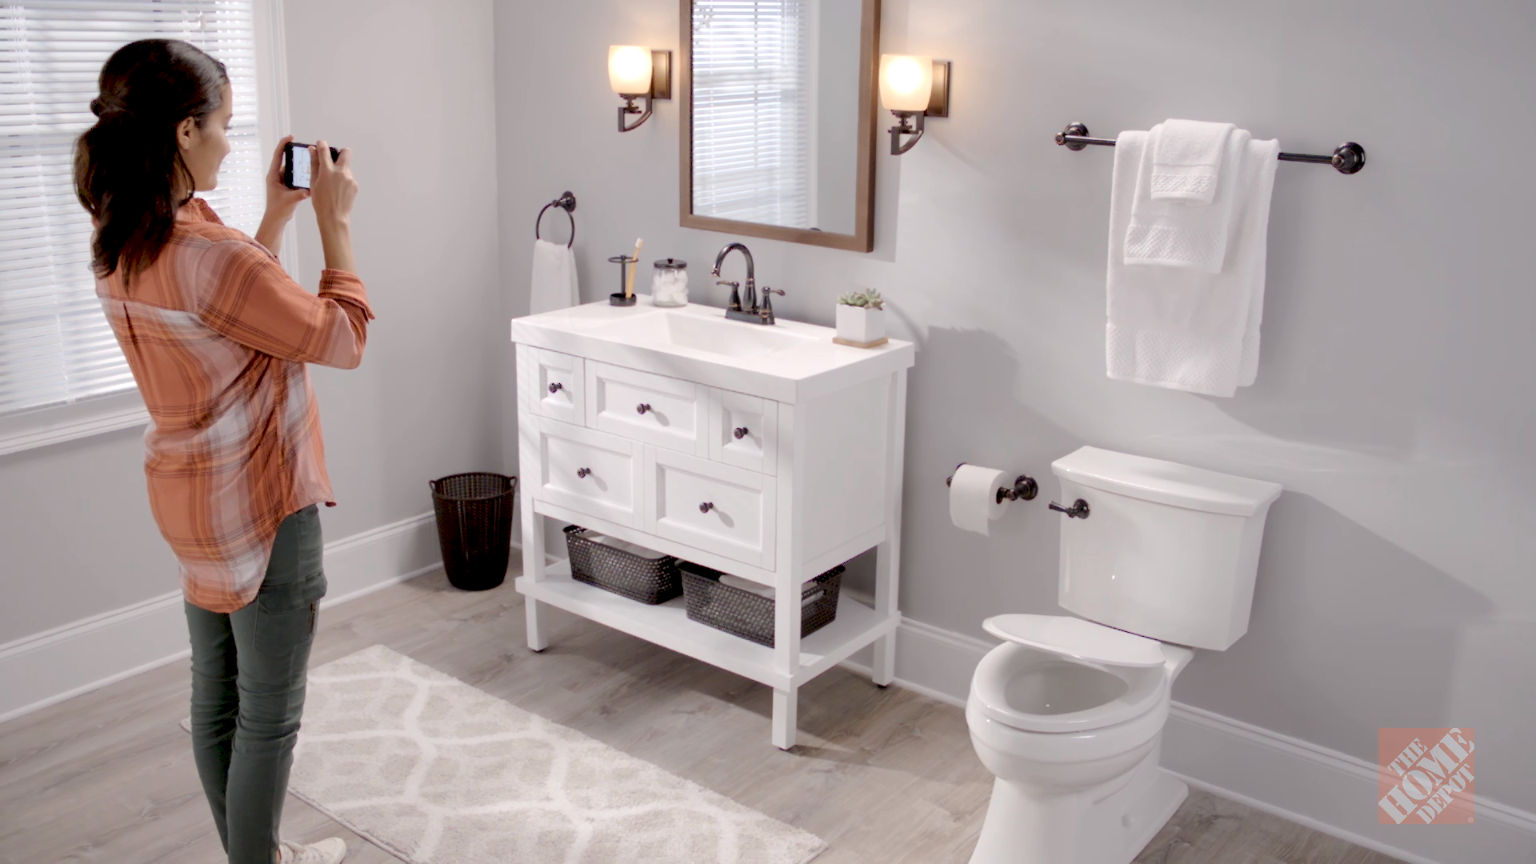 Make A Big Bath Impact With A Little Bit Of Budget An Easy Weekend - How to update your bathroom on a budget